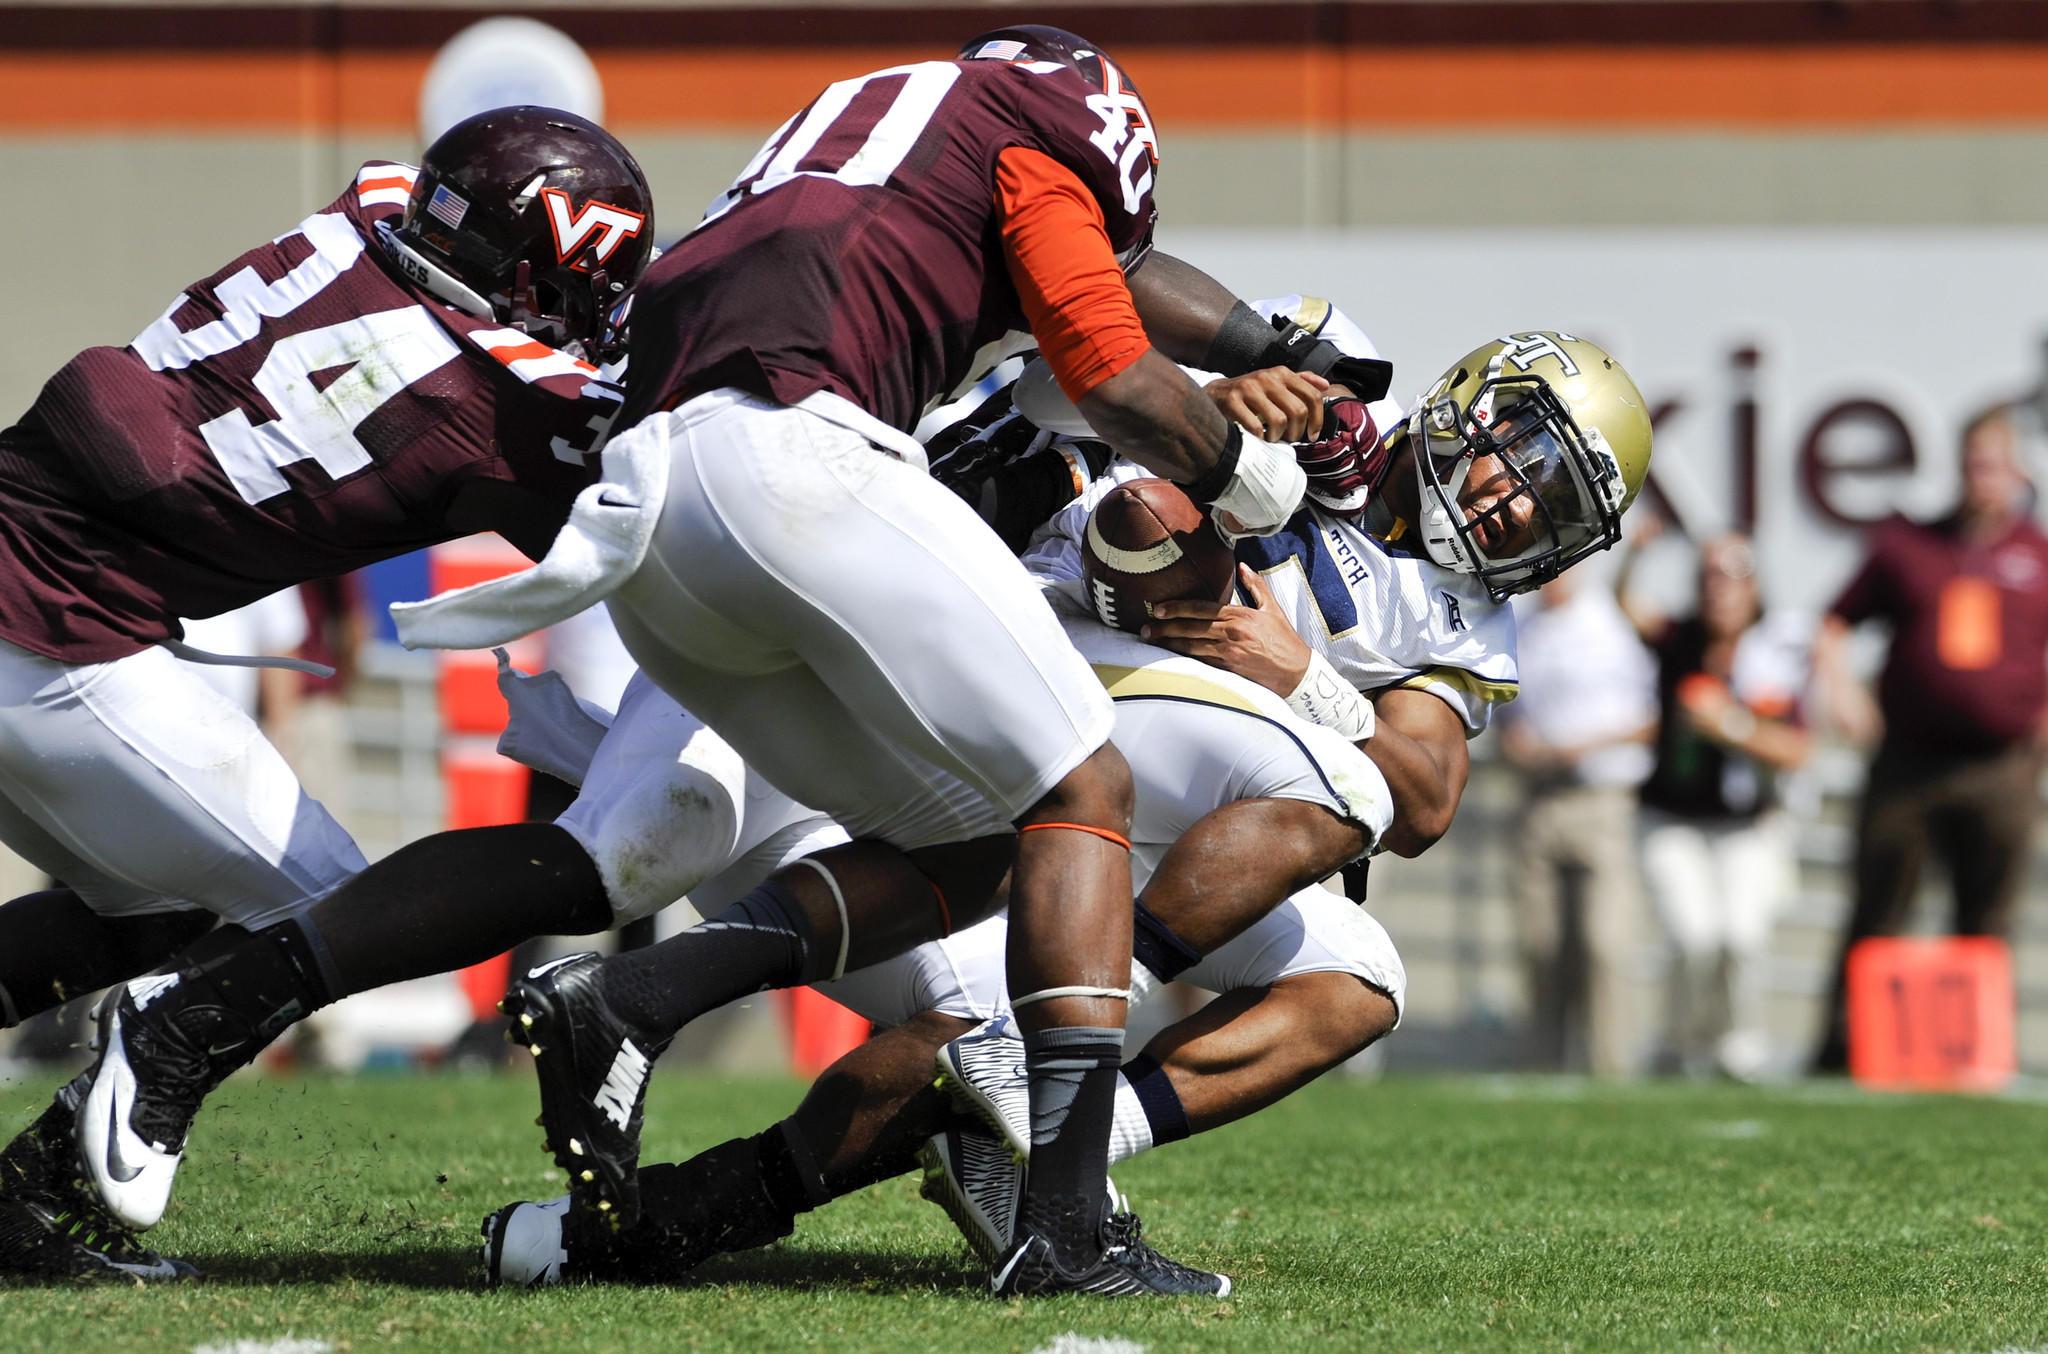 BLACKSBURG, VA - SEPTEMBER 20: Quarterback Justin Thomas #5 of the Georgia Tech Yellow Jackets fumbles after being hit by linebacker Deon Clarke #40 and rover Kyshoen Jarrett #34 of the Virginia Tech Hokies in the second half at Lane Stadium on September 20, 2014 in Blacksburg, Virginia. The play had previously been blown dead for forward progress. Georgia Tech defeated Virginia Tech 27-24. (Photo by Michael Shroyer/Getty Images) ORG XMIT: 511821687